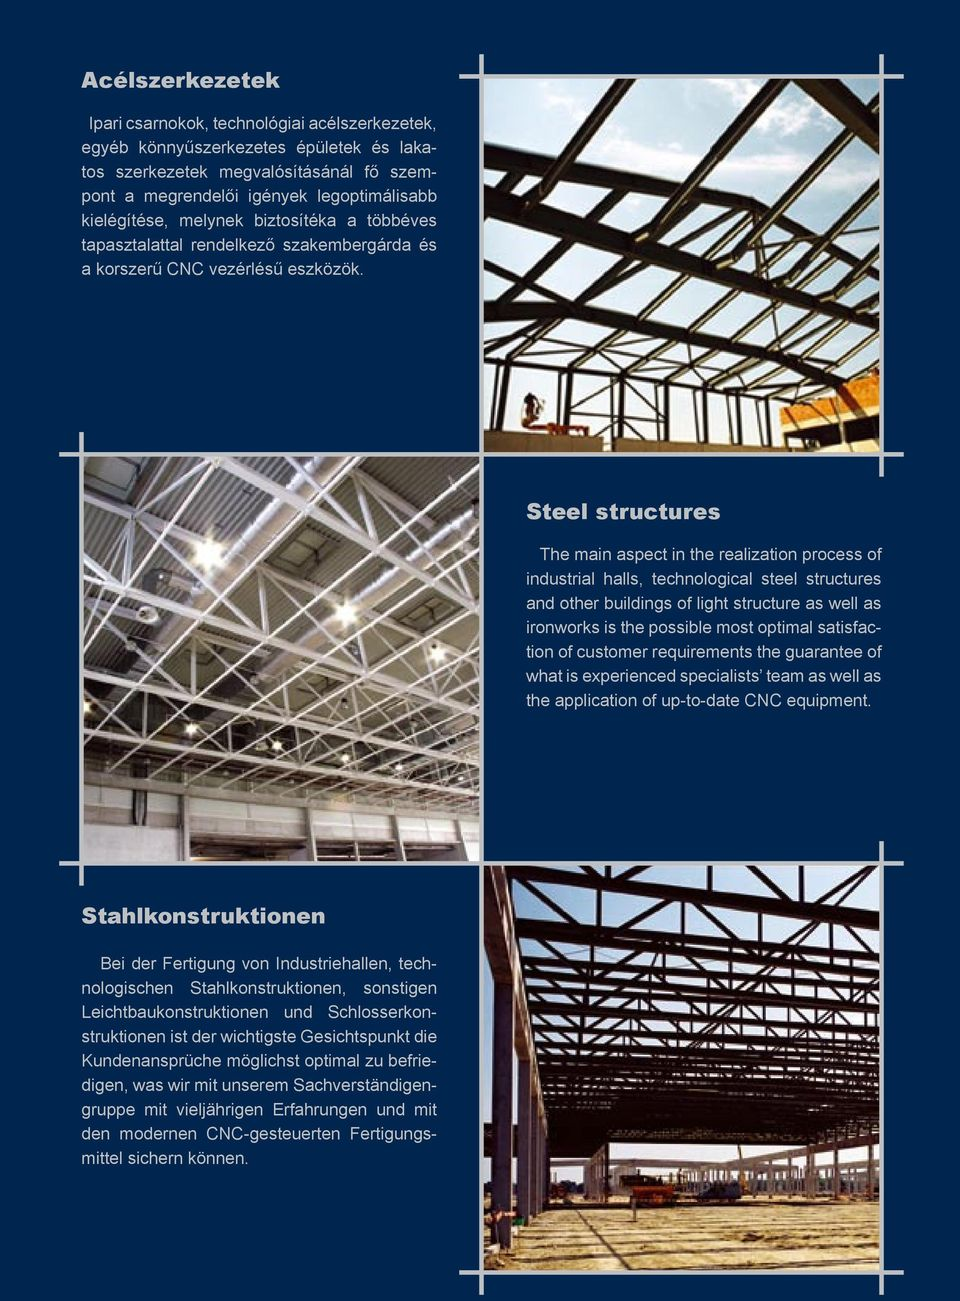 Steel structures The main aspect in the realization process of industrial halls, technological steel structures and other buildings of light structure as well as ironworks is the possible most